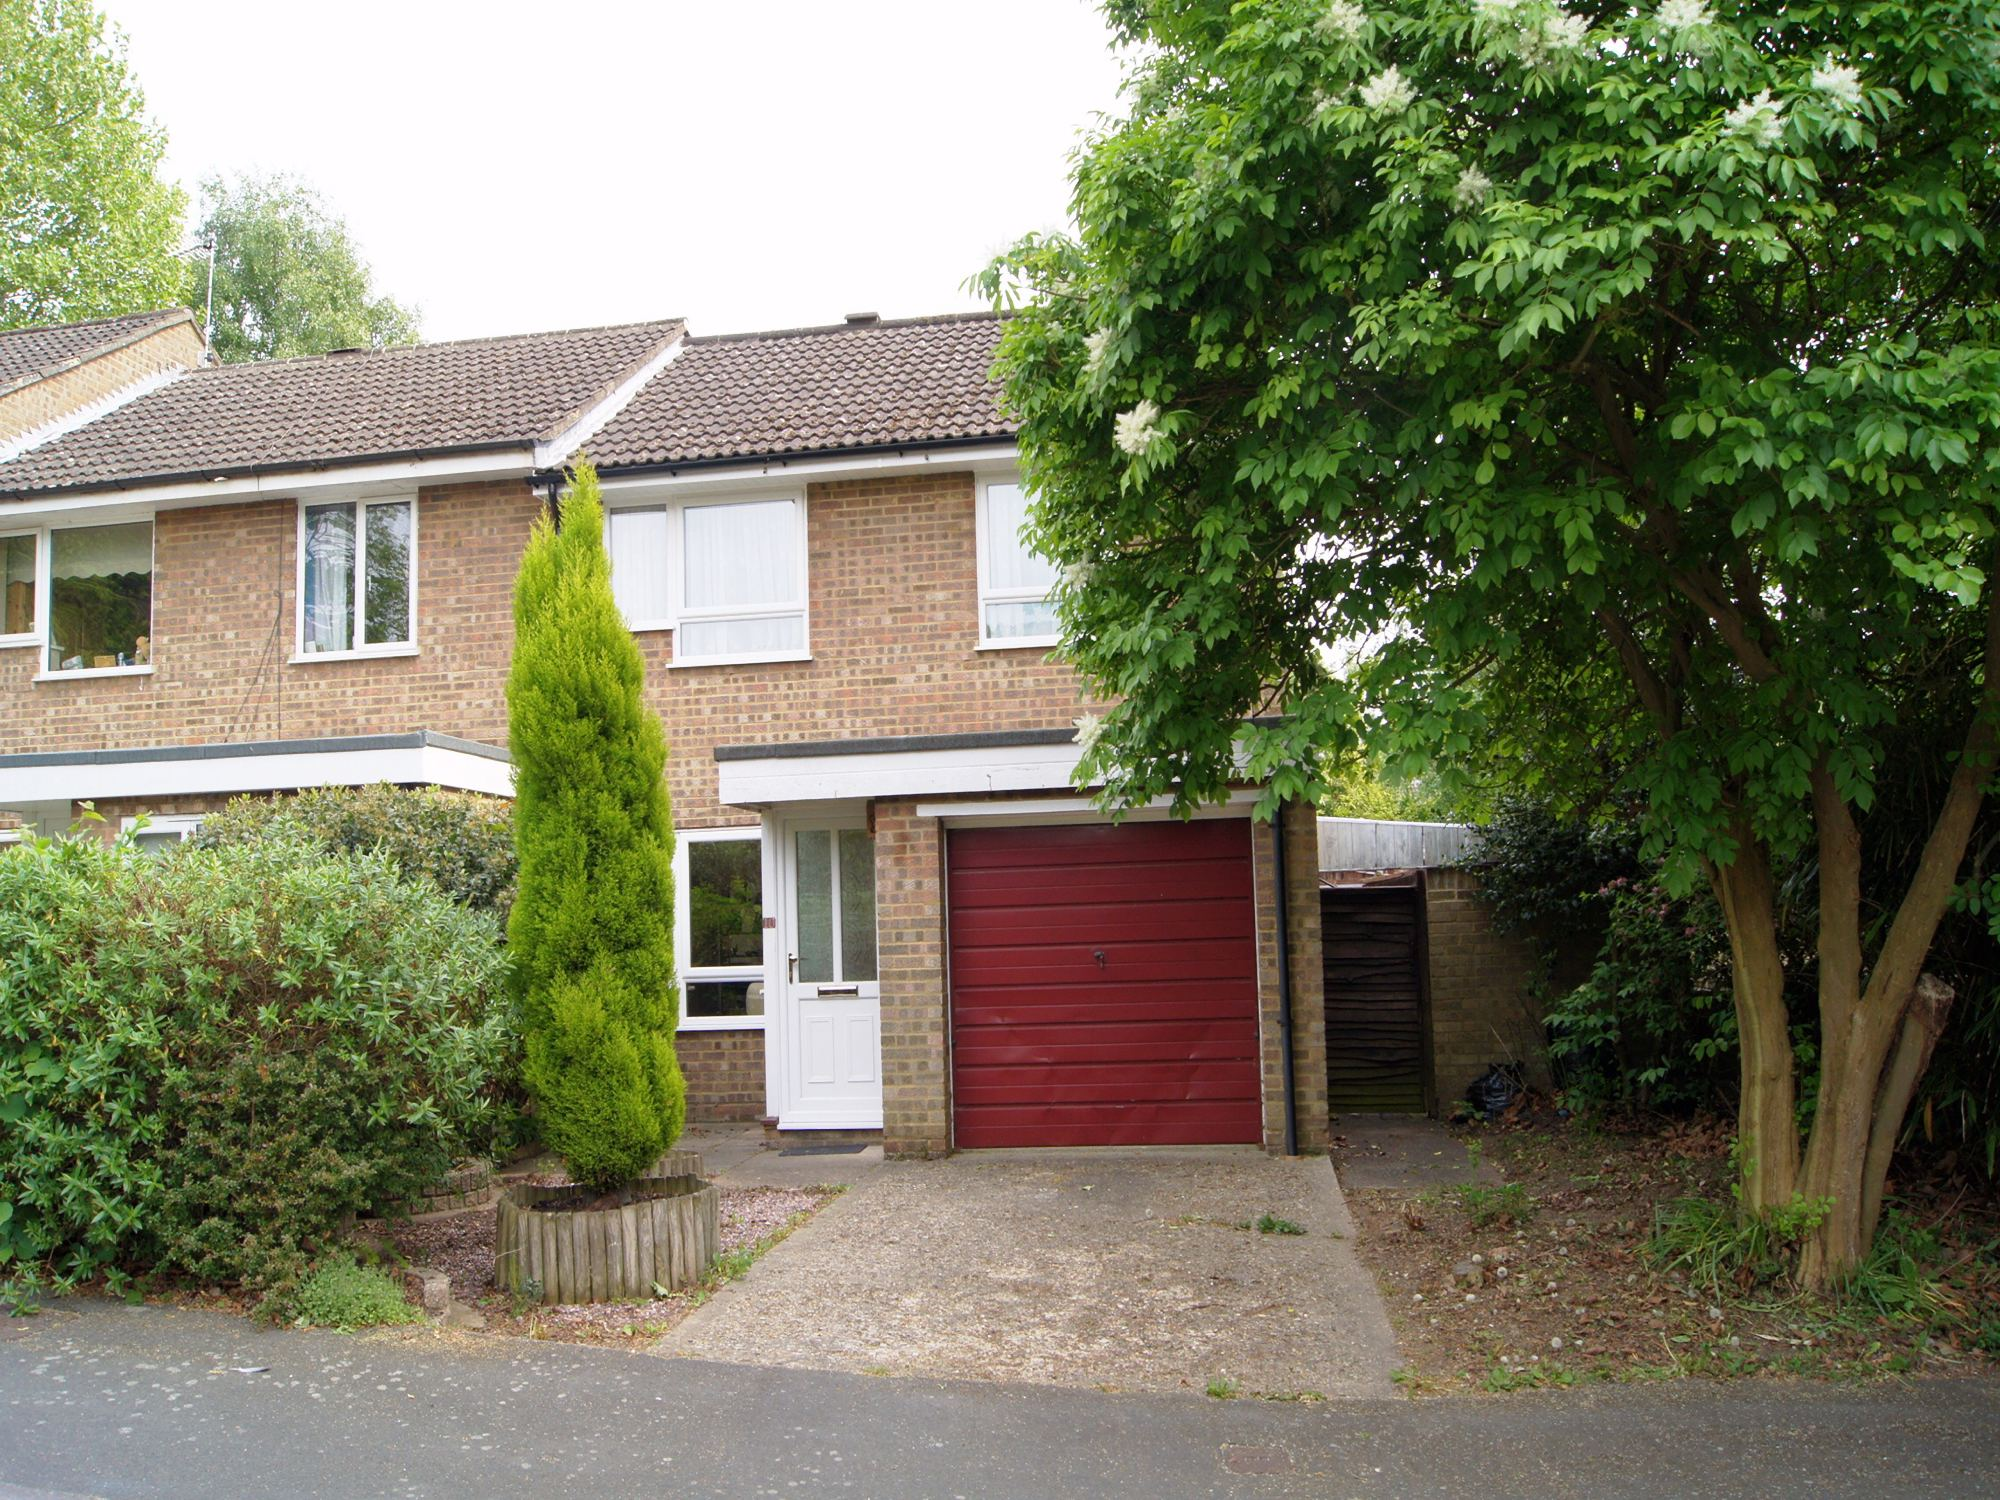 3 Bedrooms End Of Terrace House for sale in Norton Road, Camberley, Surrey, GU15